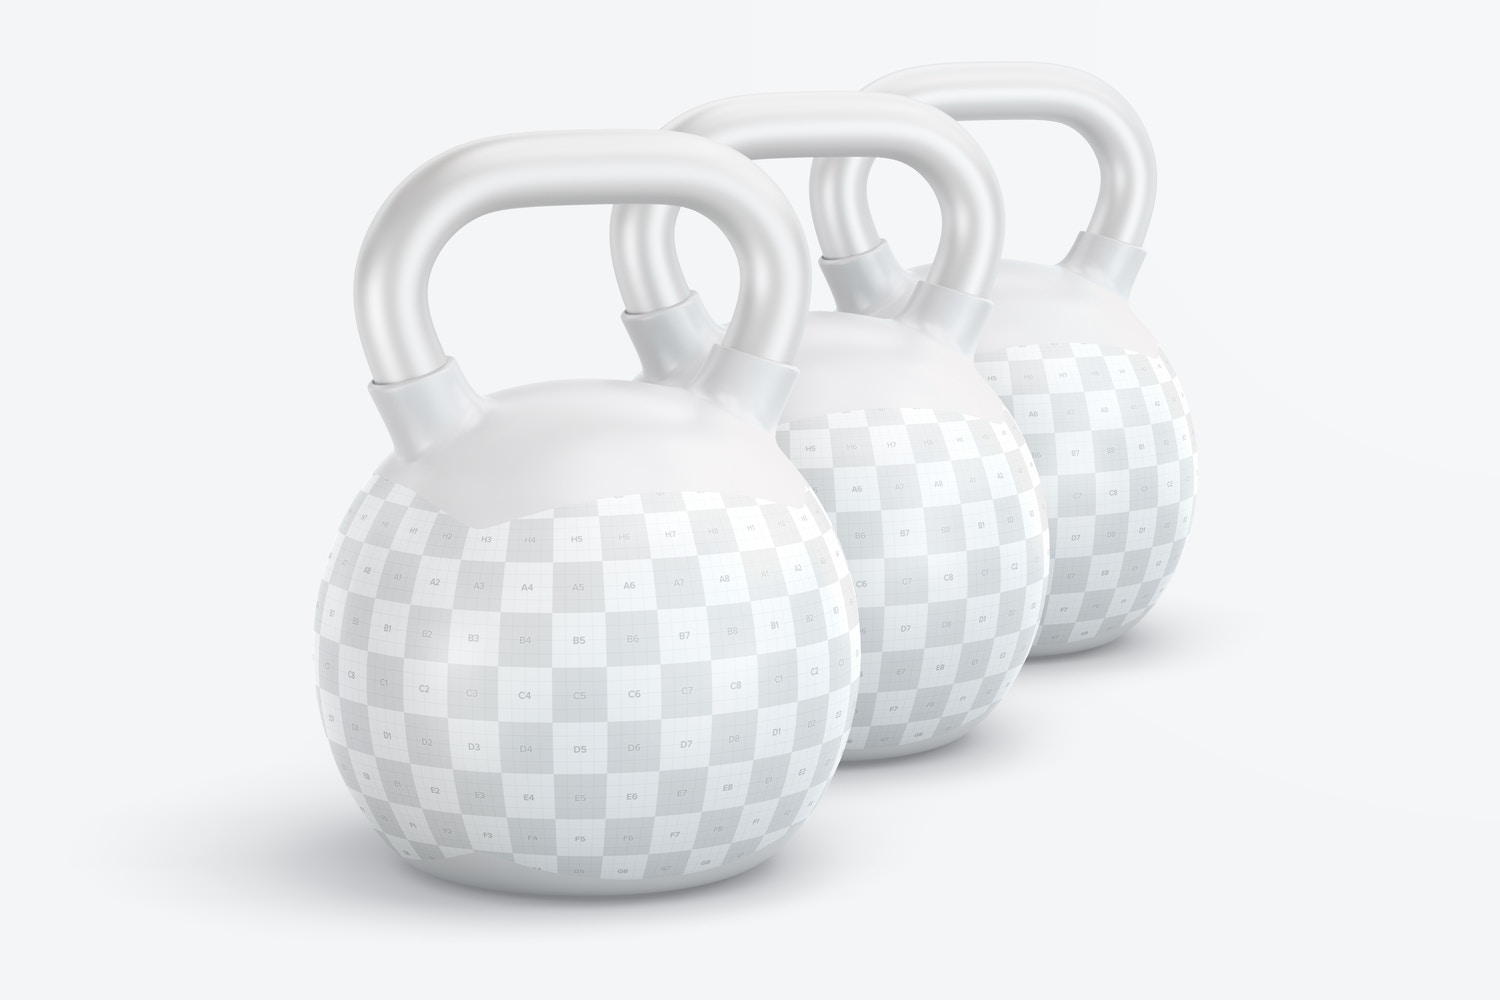 Customize your design in this mockup with three kettlebells.